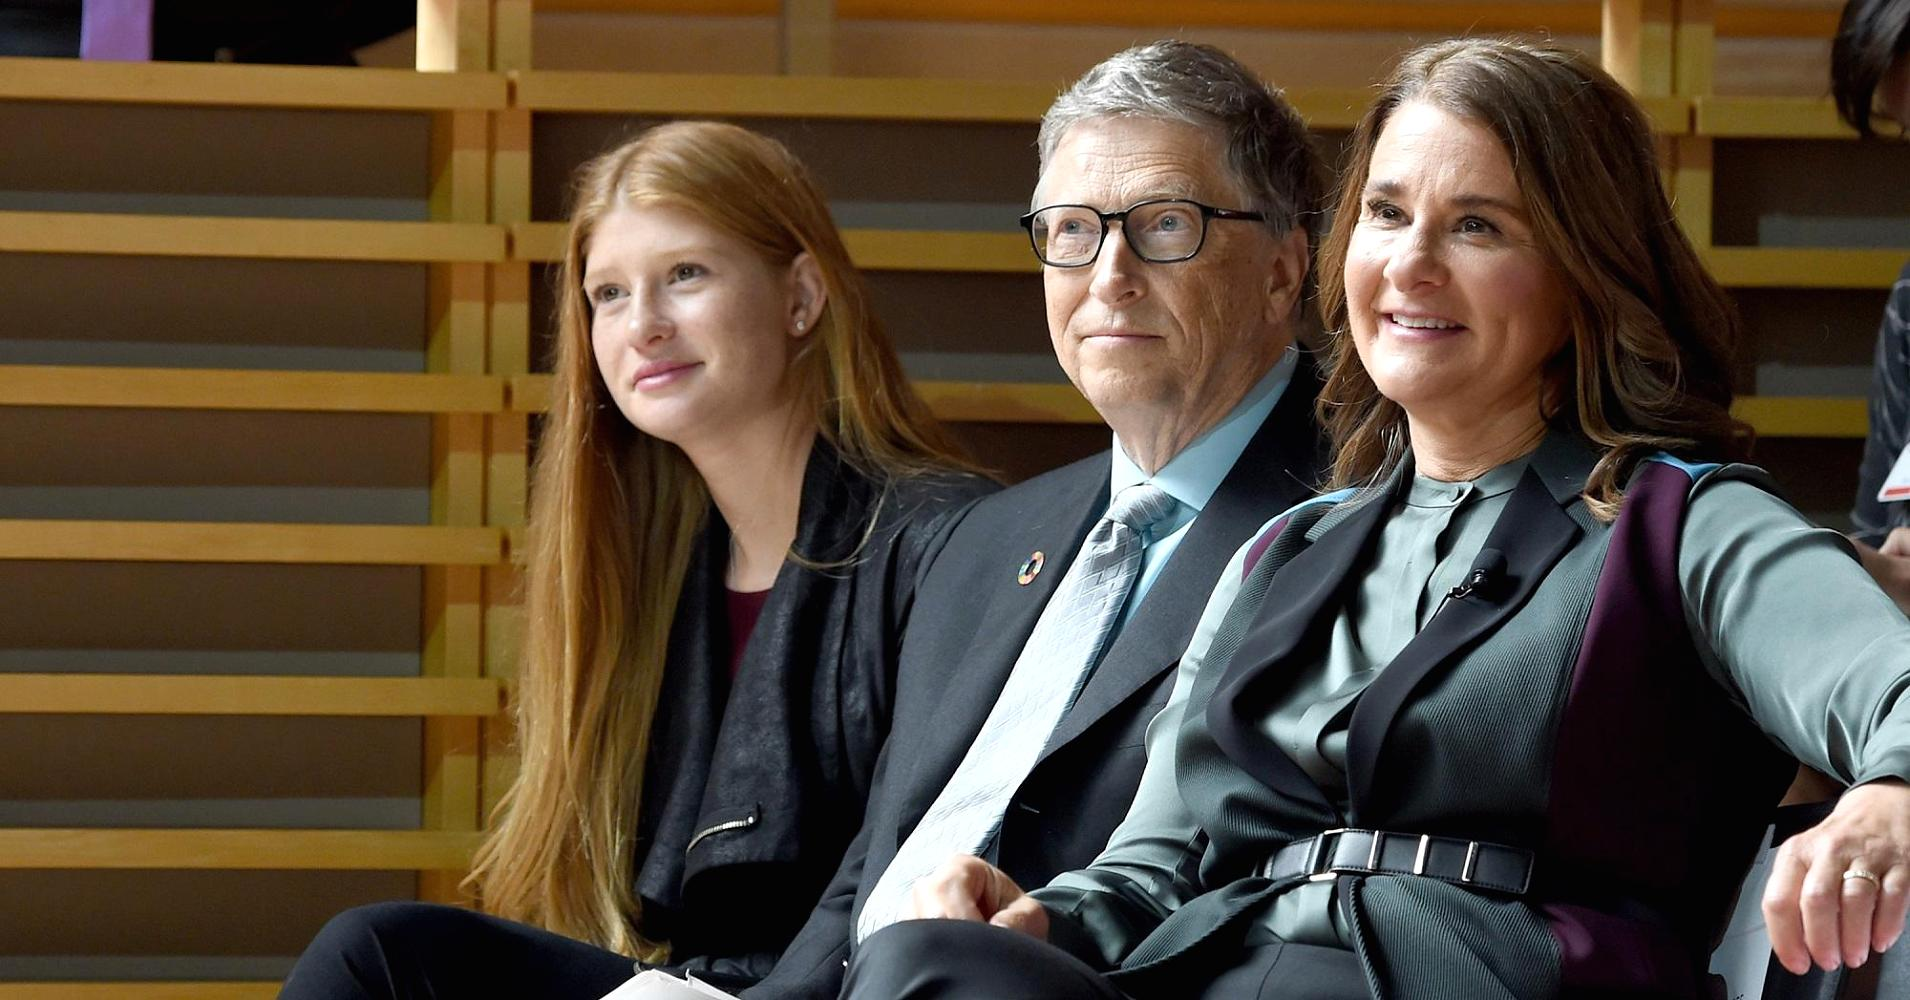 Phoebe Adele Gates, Bill Gates, and Melinda Gates attend the Goalkeepers 2017.